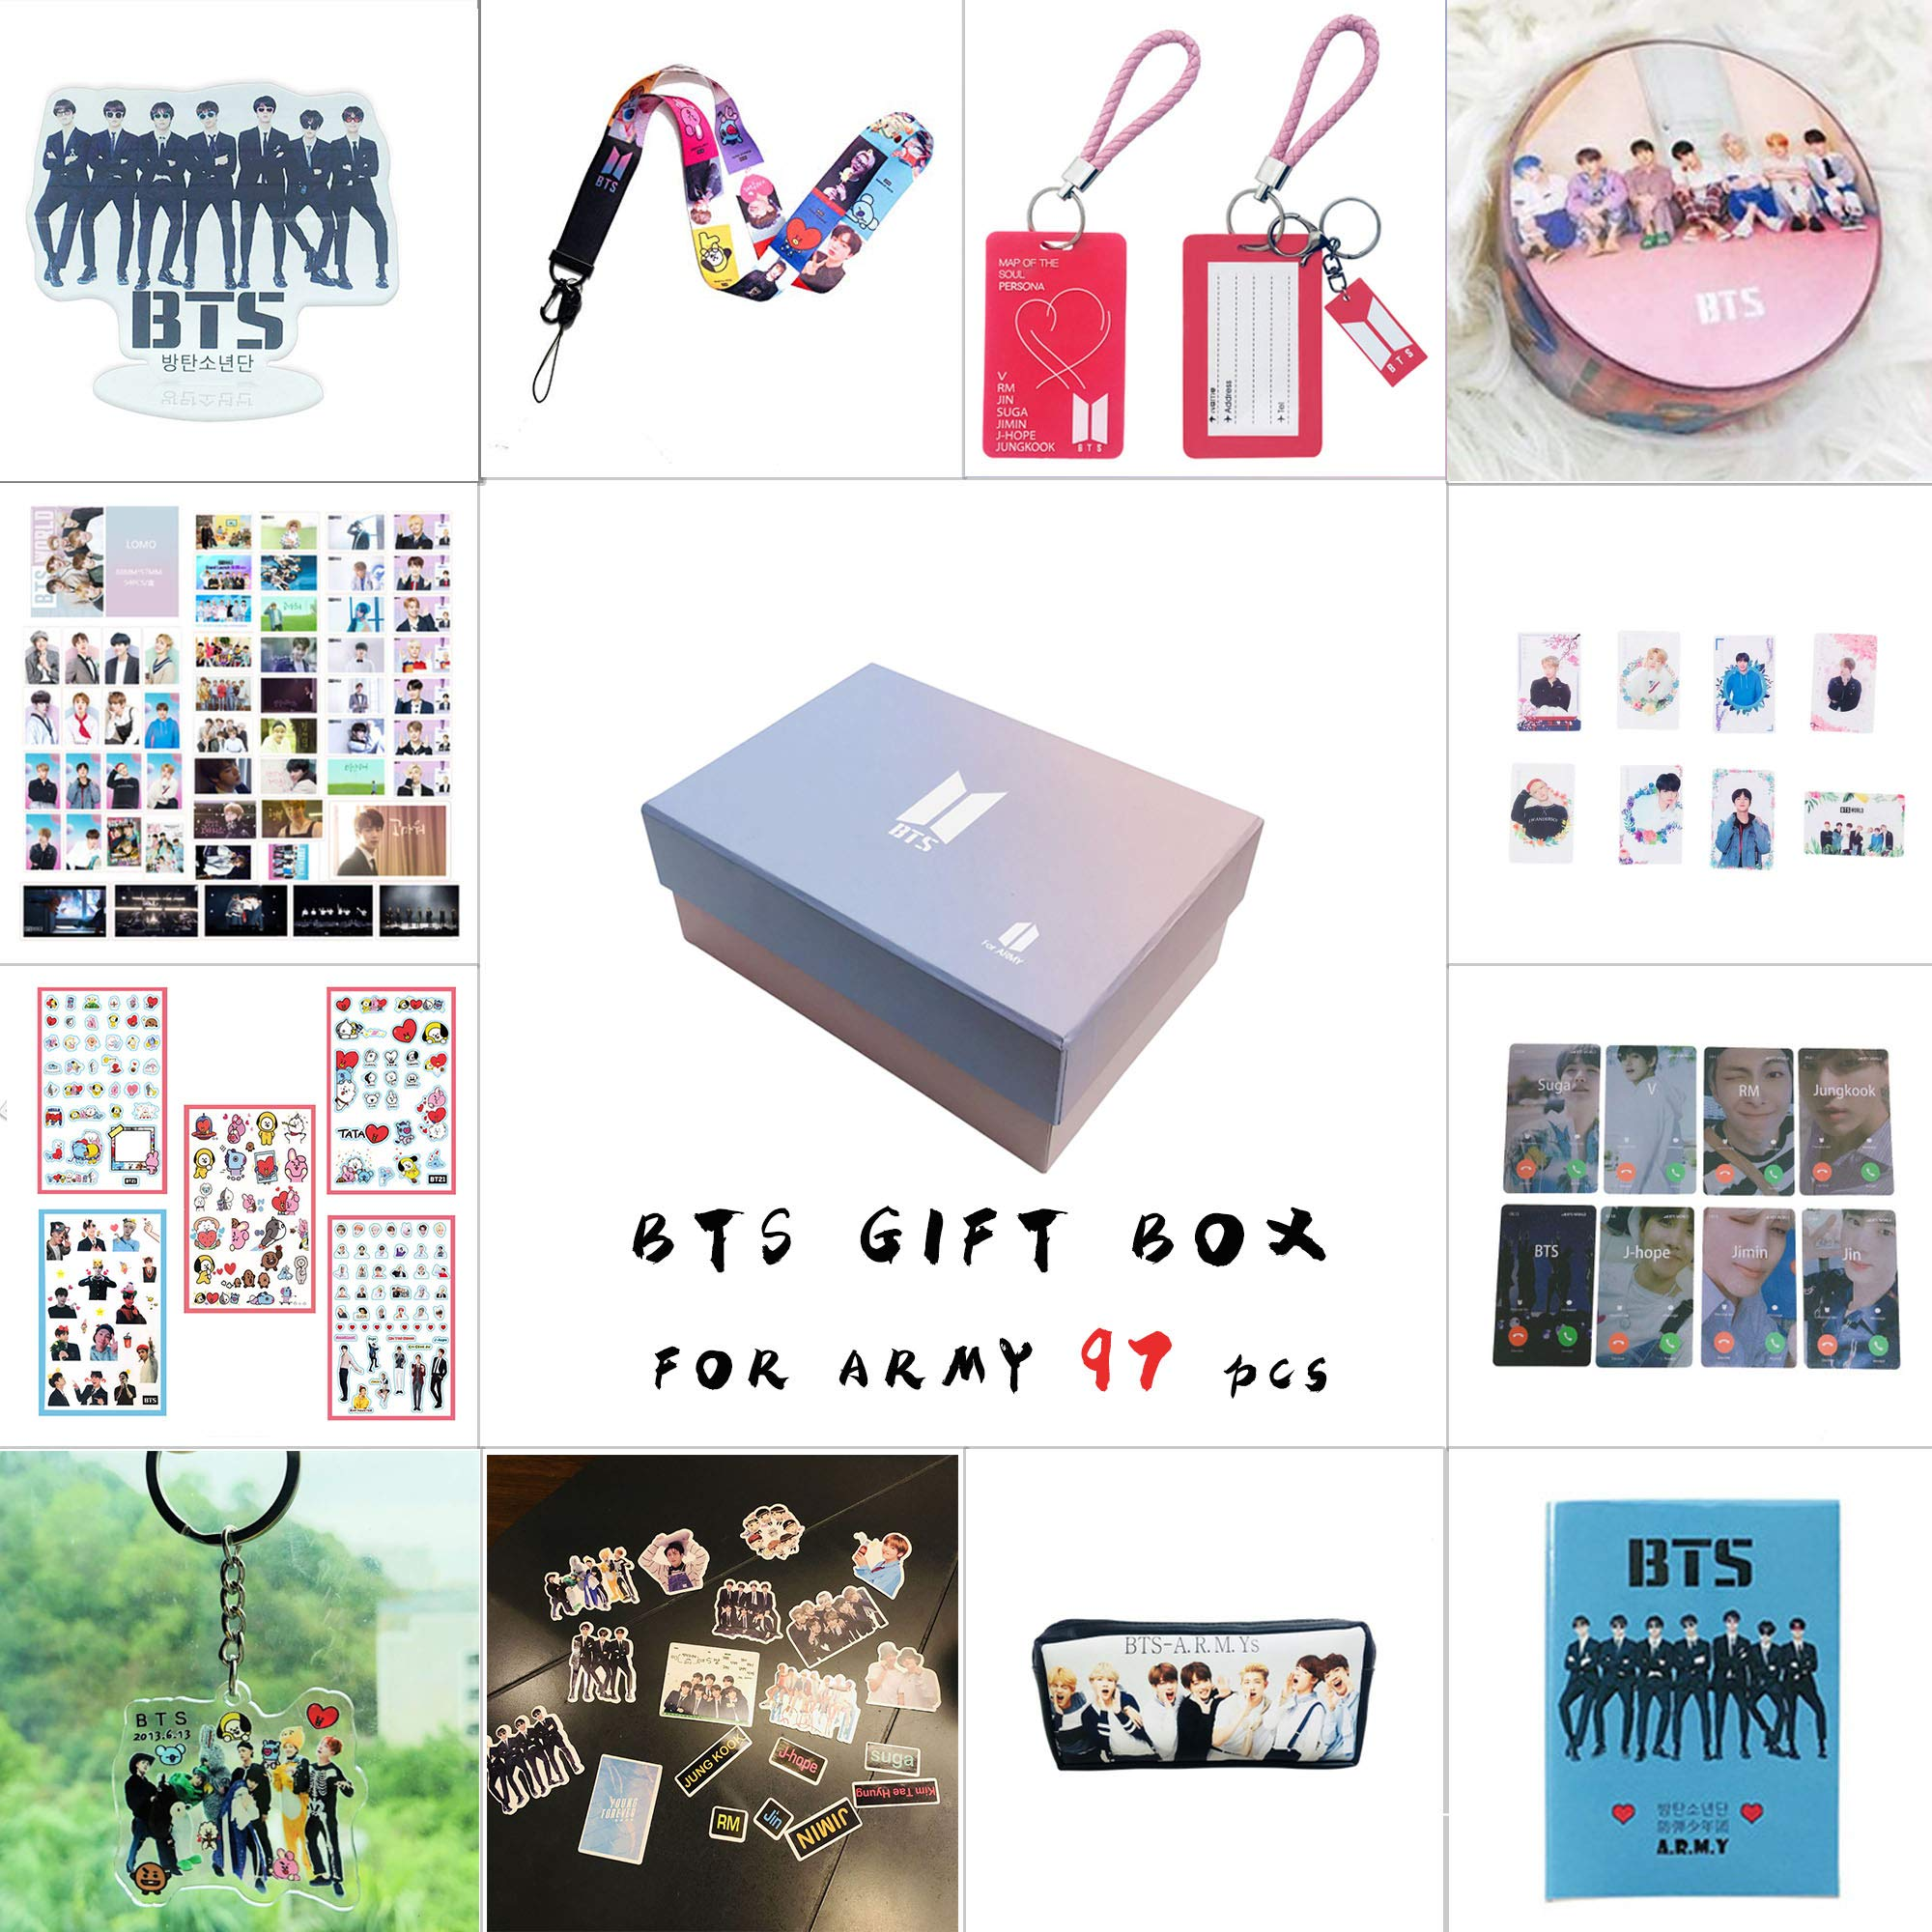 BTS Gifts Set for Army 97 pcs Bantan Boys World Box Include Postcards Stickers,Gift Case for Daughter Granddaughter (BTS-Box) by BTS-Gift BOX